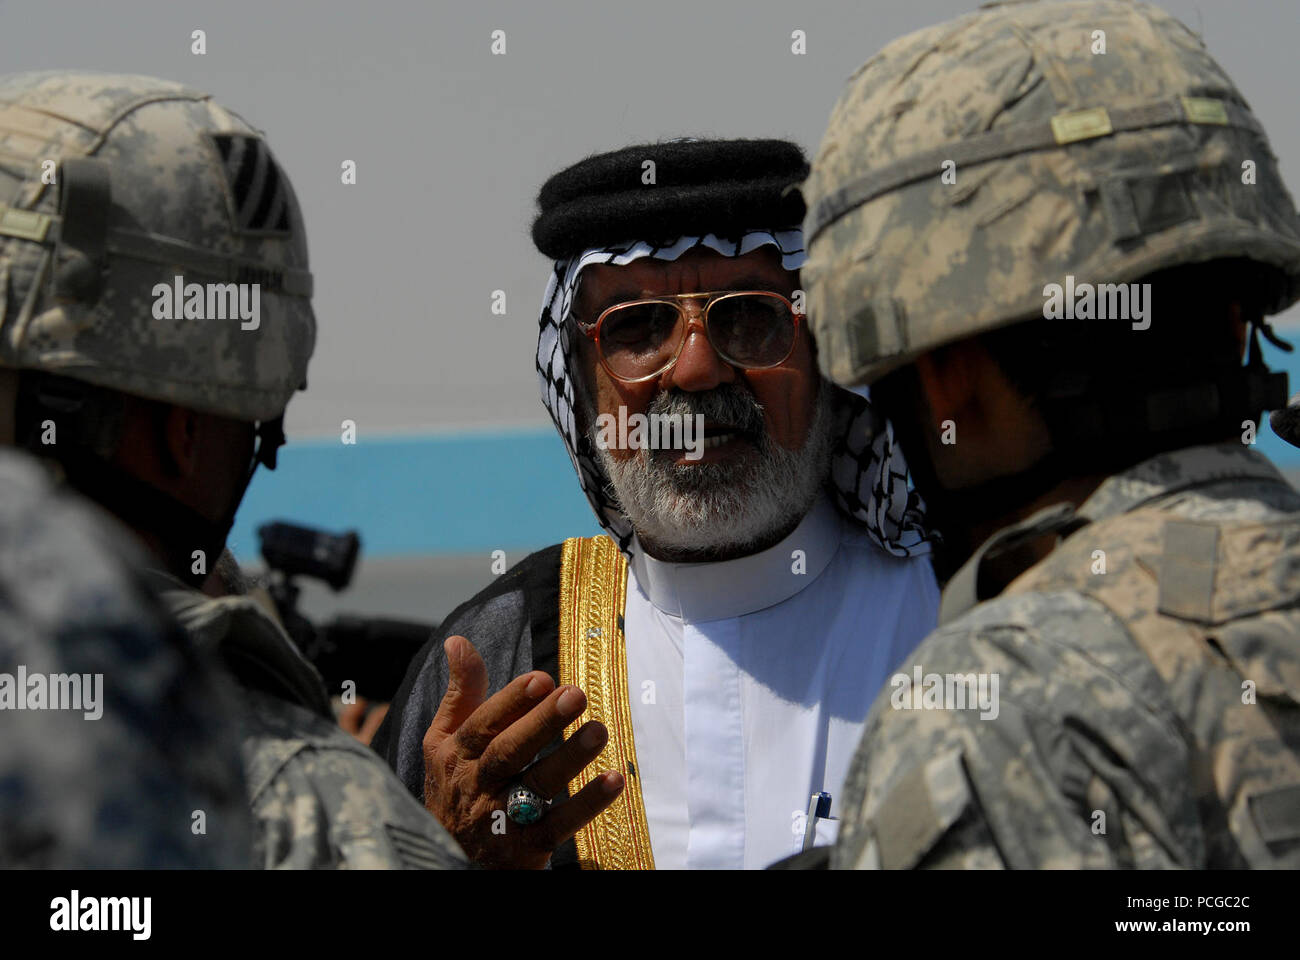 Abu Sabah, center, a respected elder, speaks to U.S. Army Lt. Col. Johnnie Johnson, right, assigned to the Personal Security Detachment, 4th Battalion, 64th Armor Regiment, 3rd Infantry Division, and another Soldier, left, at the opening of a swimming pool in Risalah, Baghdad, Iraq, Sept. 18, 2008. - Stock Image